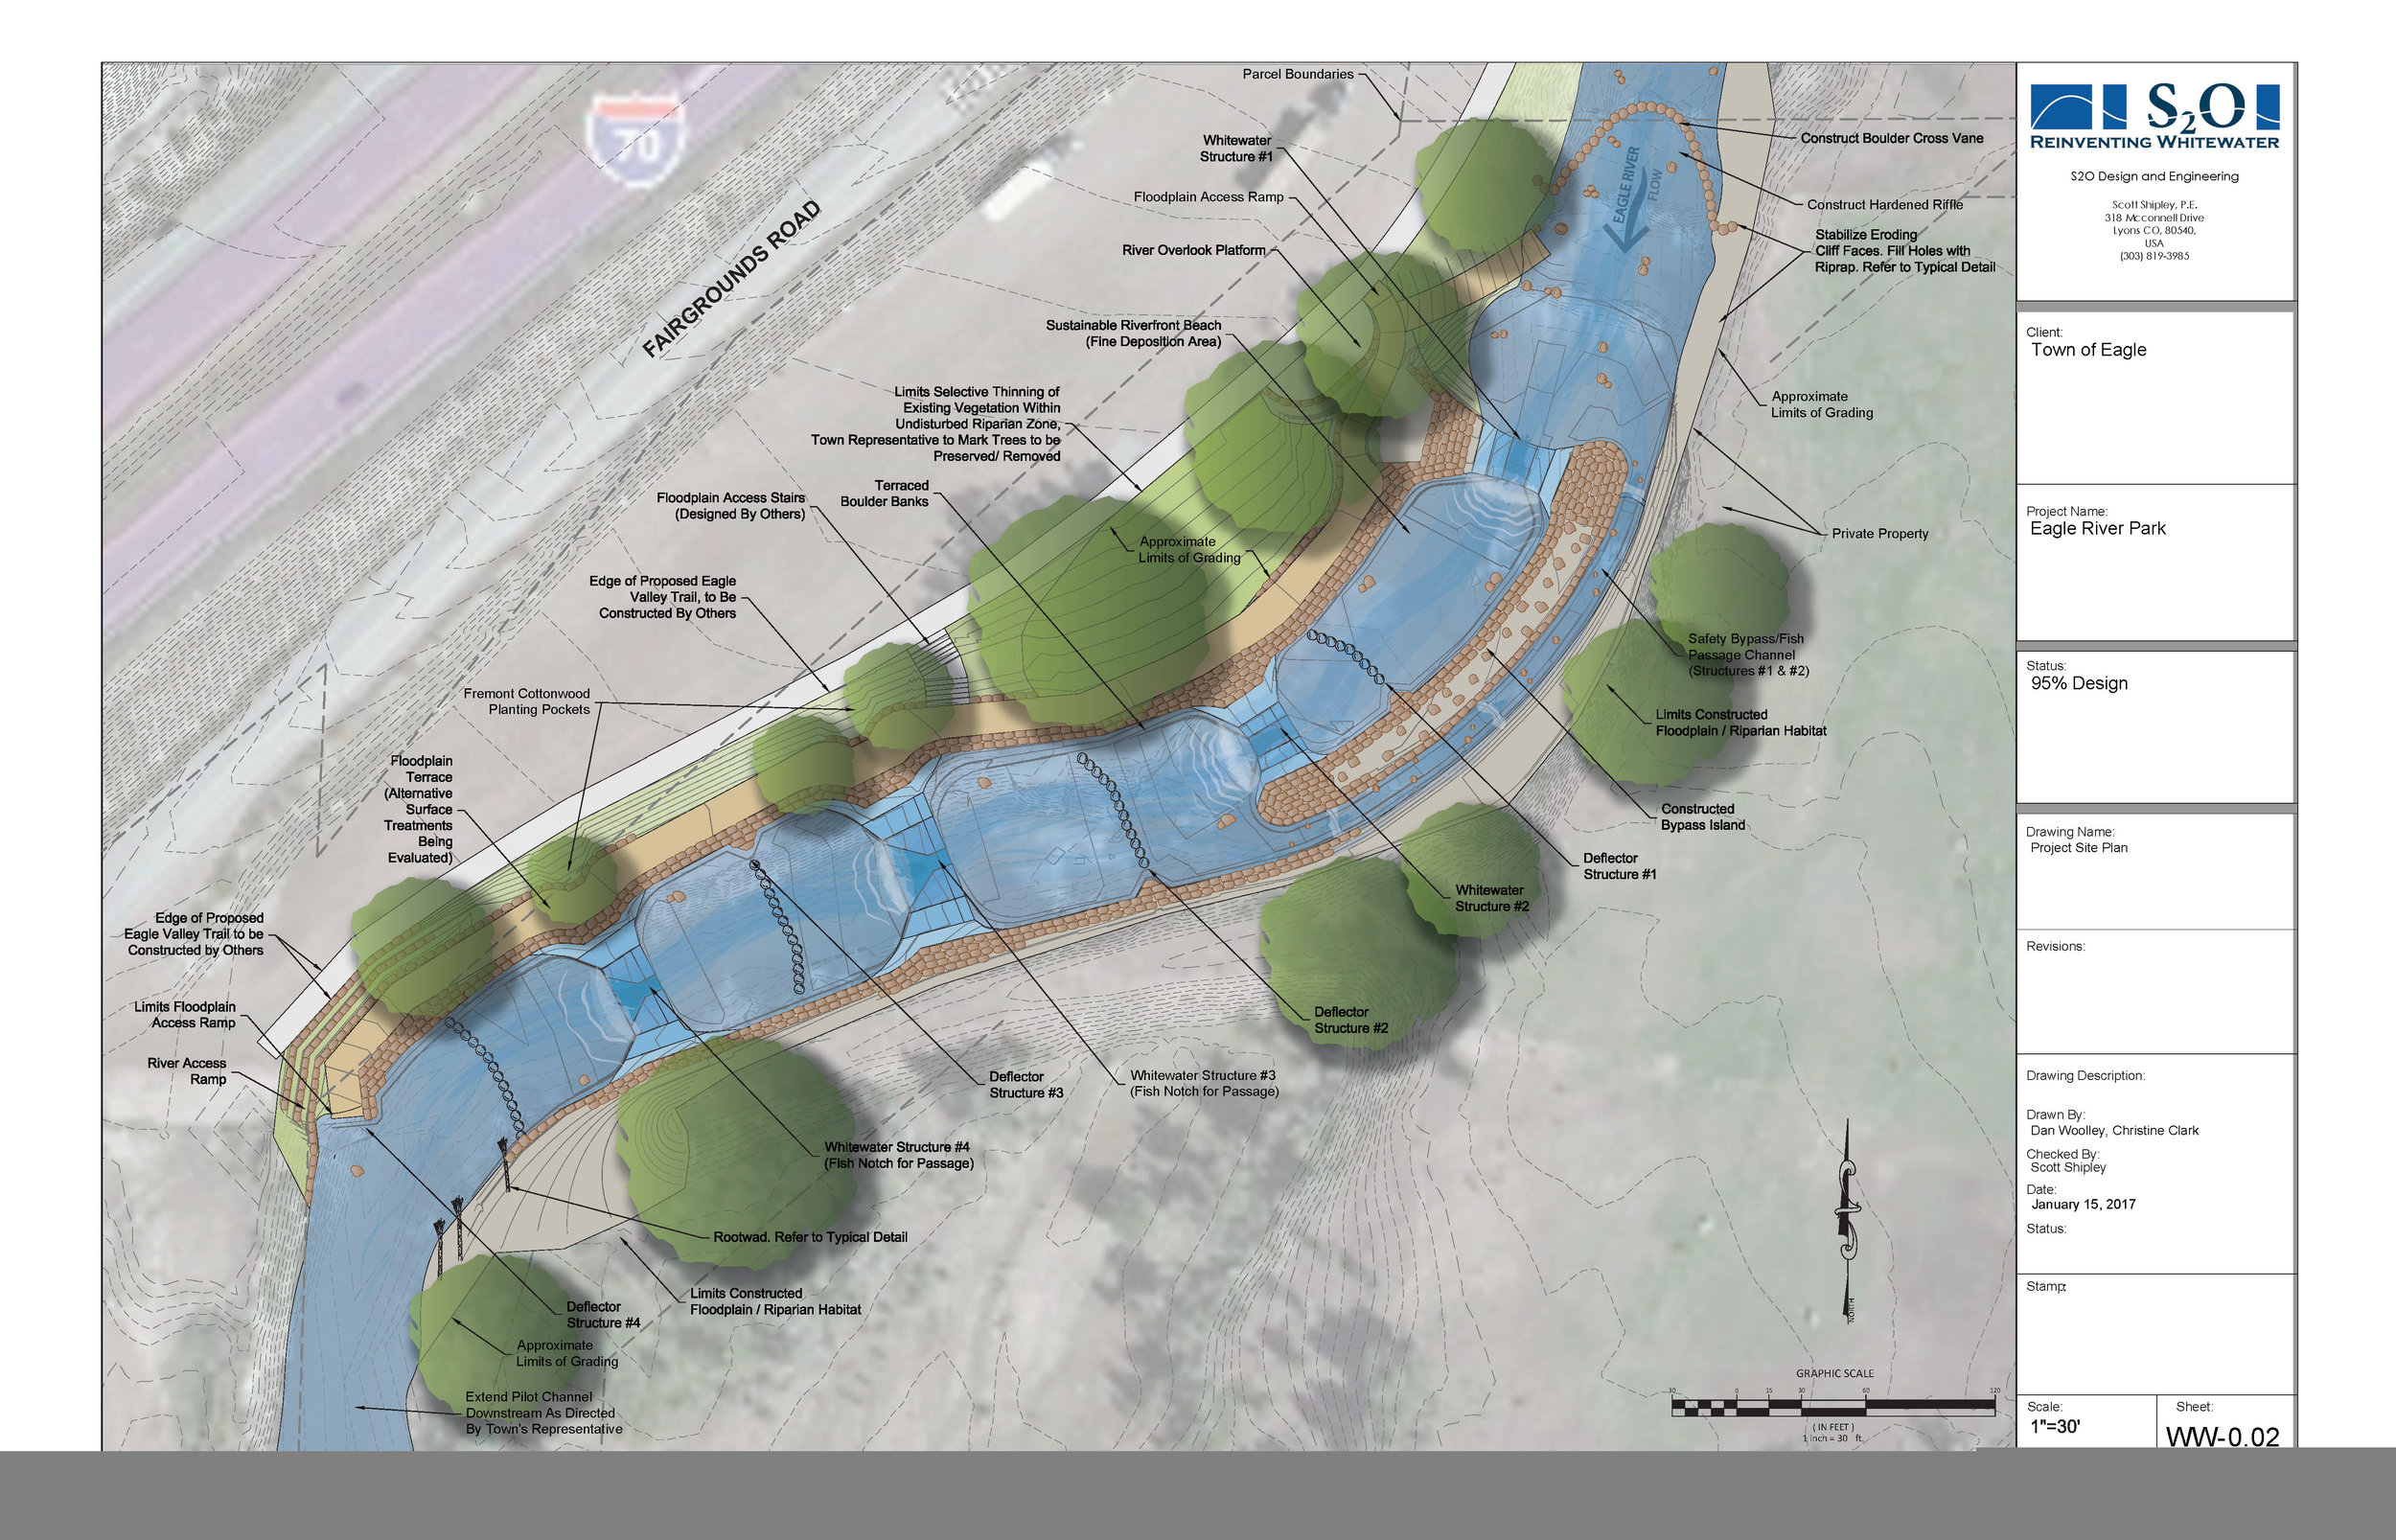 The plans for the Eagle River Whitewater Park, including parks and new green space along the riverbanks. Courtesy S2O